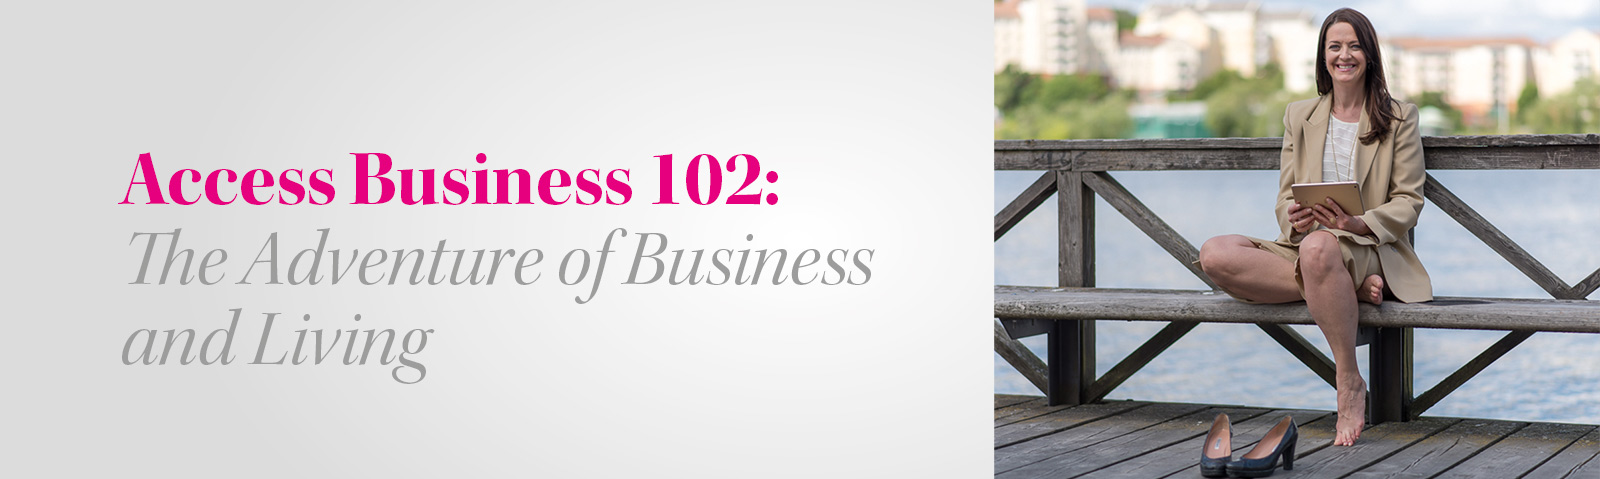 Access Business 102: The Adventure of Business and Living